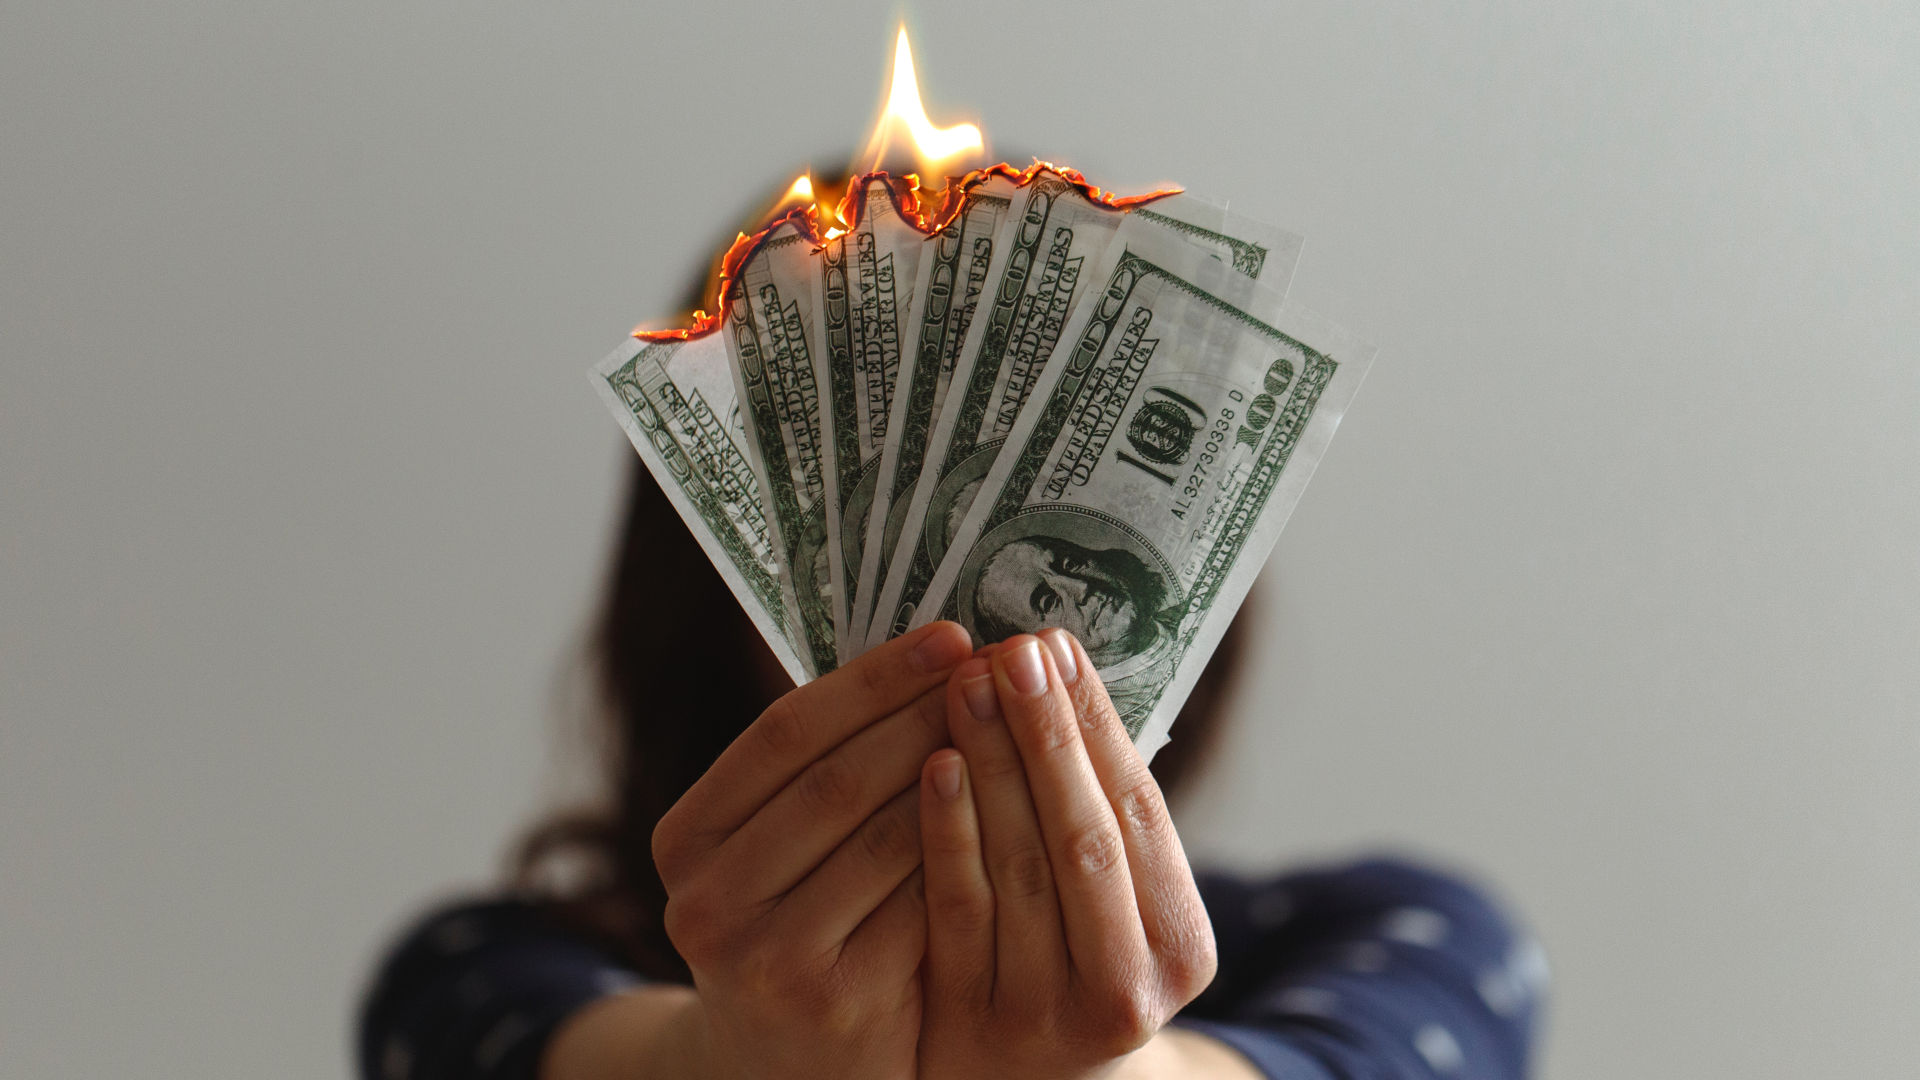 Lady Holding Burning $100 Bills